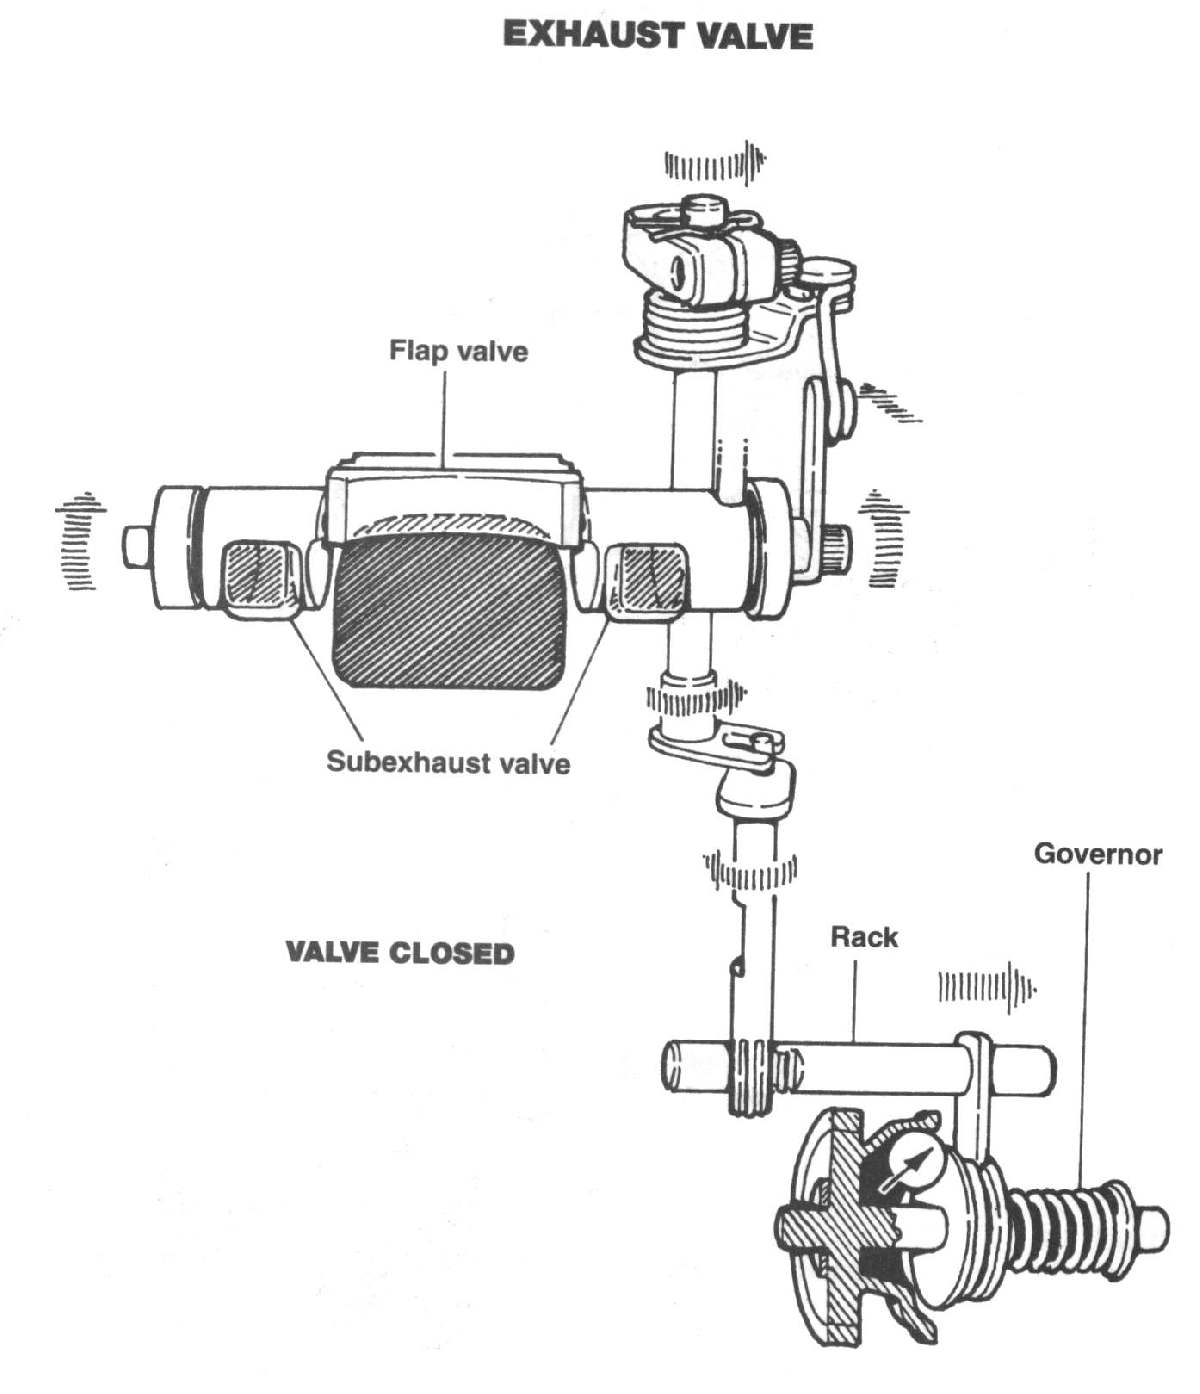 E  18 as well SERIAL together with 2280 Trx250x Chain Roller furthermore 132074 Line Wiring Diagrams also Kawasaki Prairie 360 Parts Diagram. on honda 250 atv engine diagram